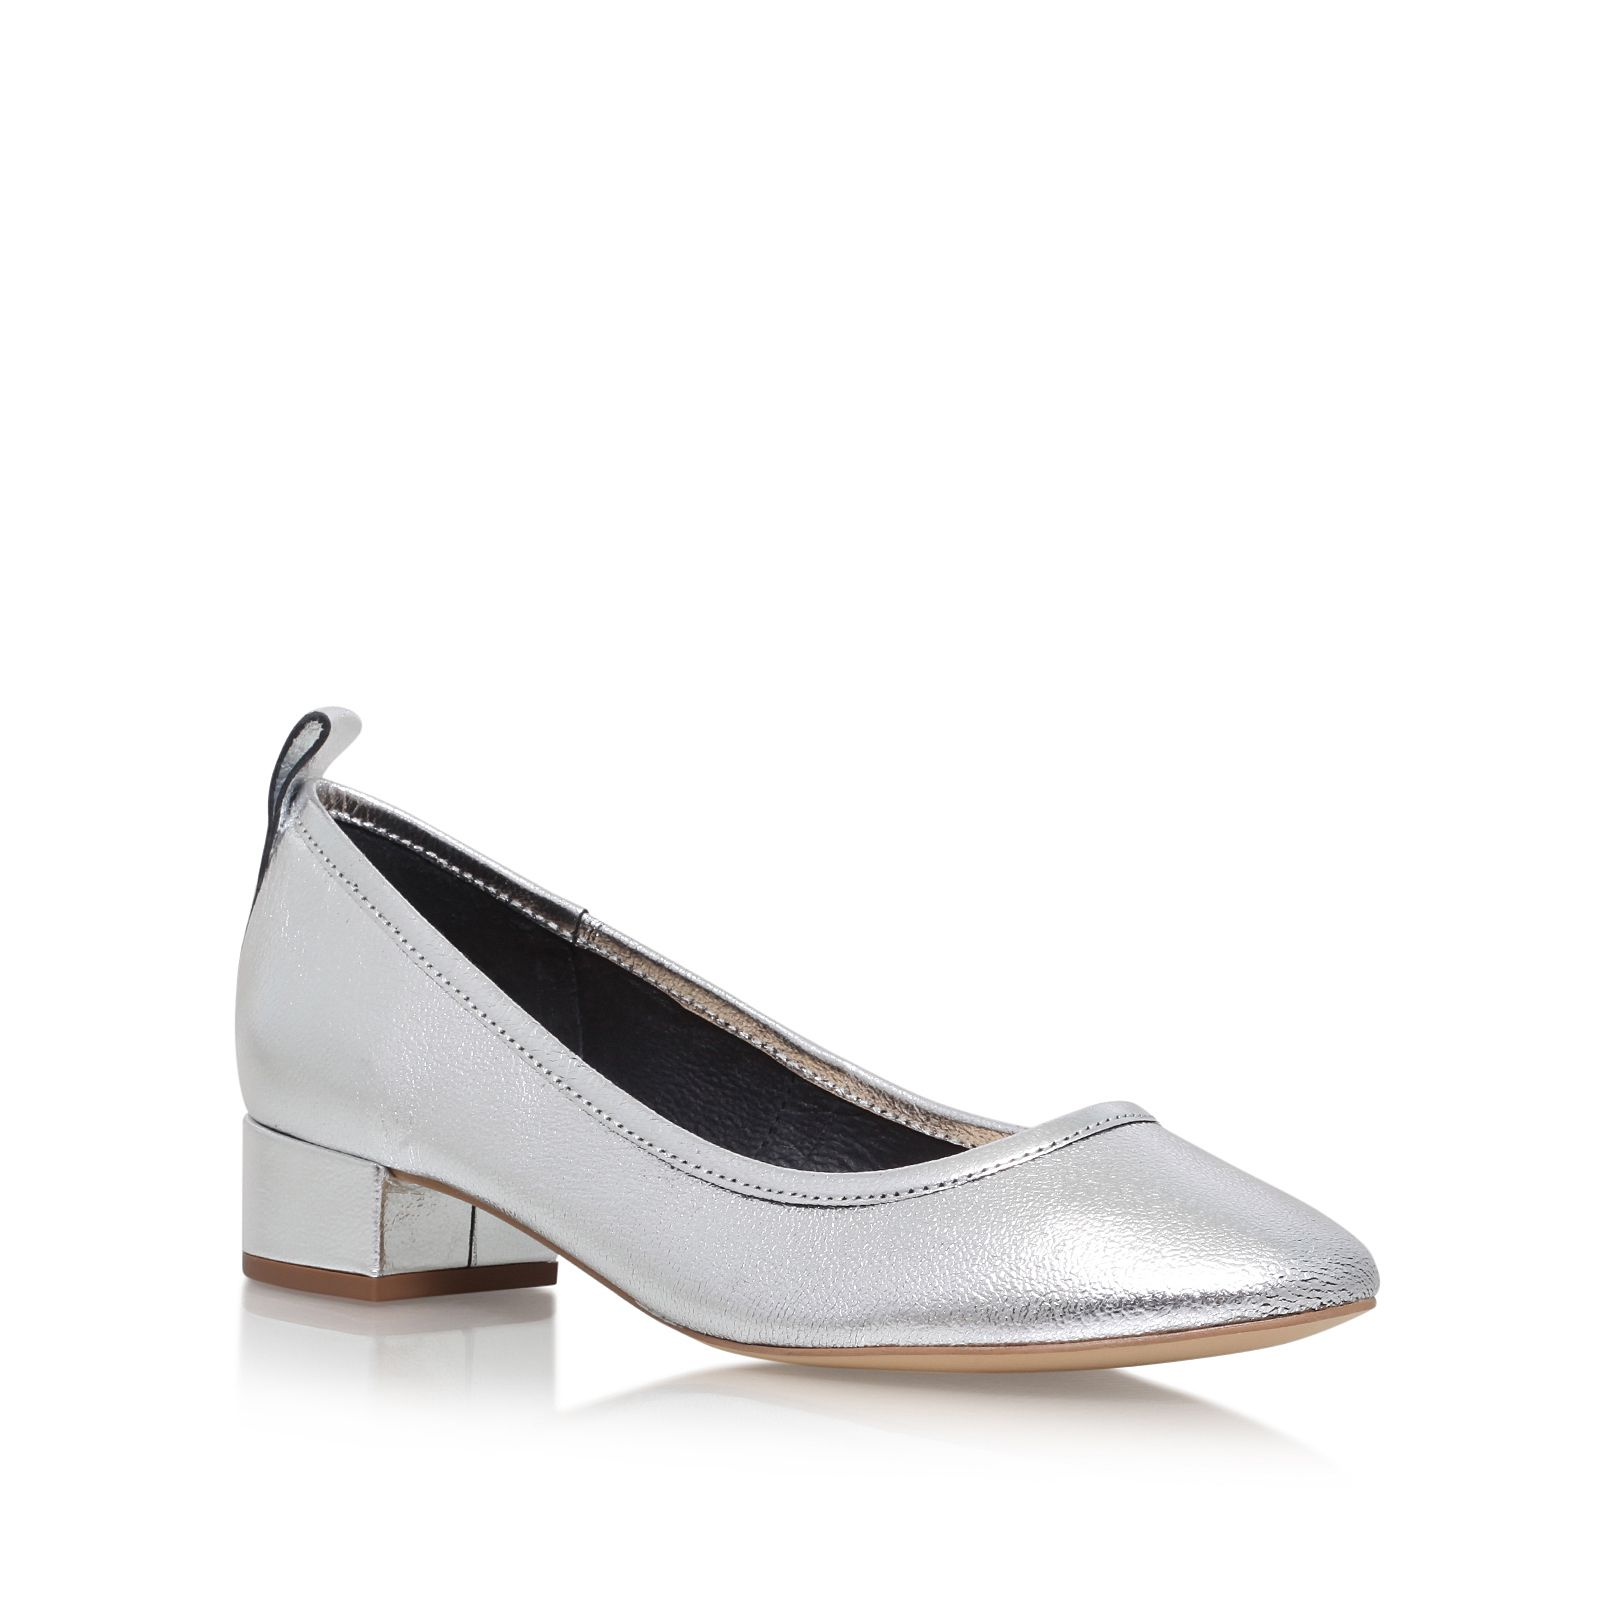 Carvela Aston court shoes Silver